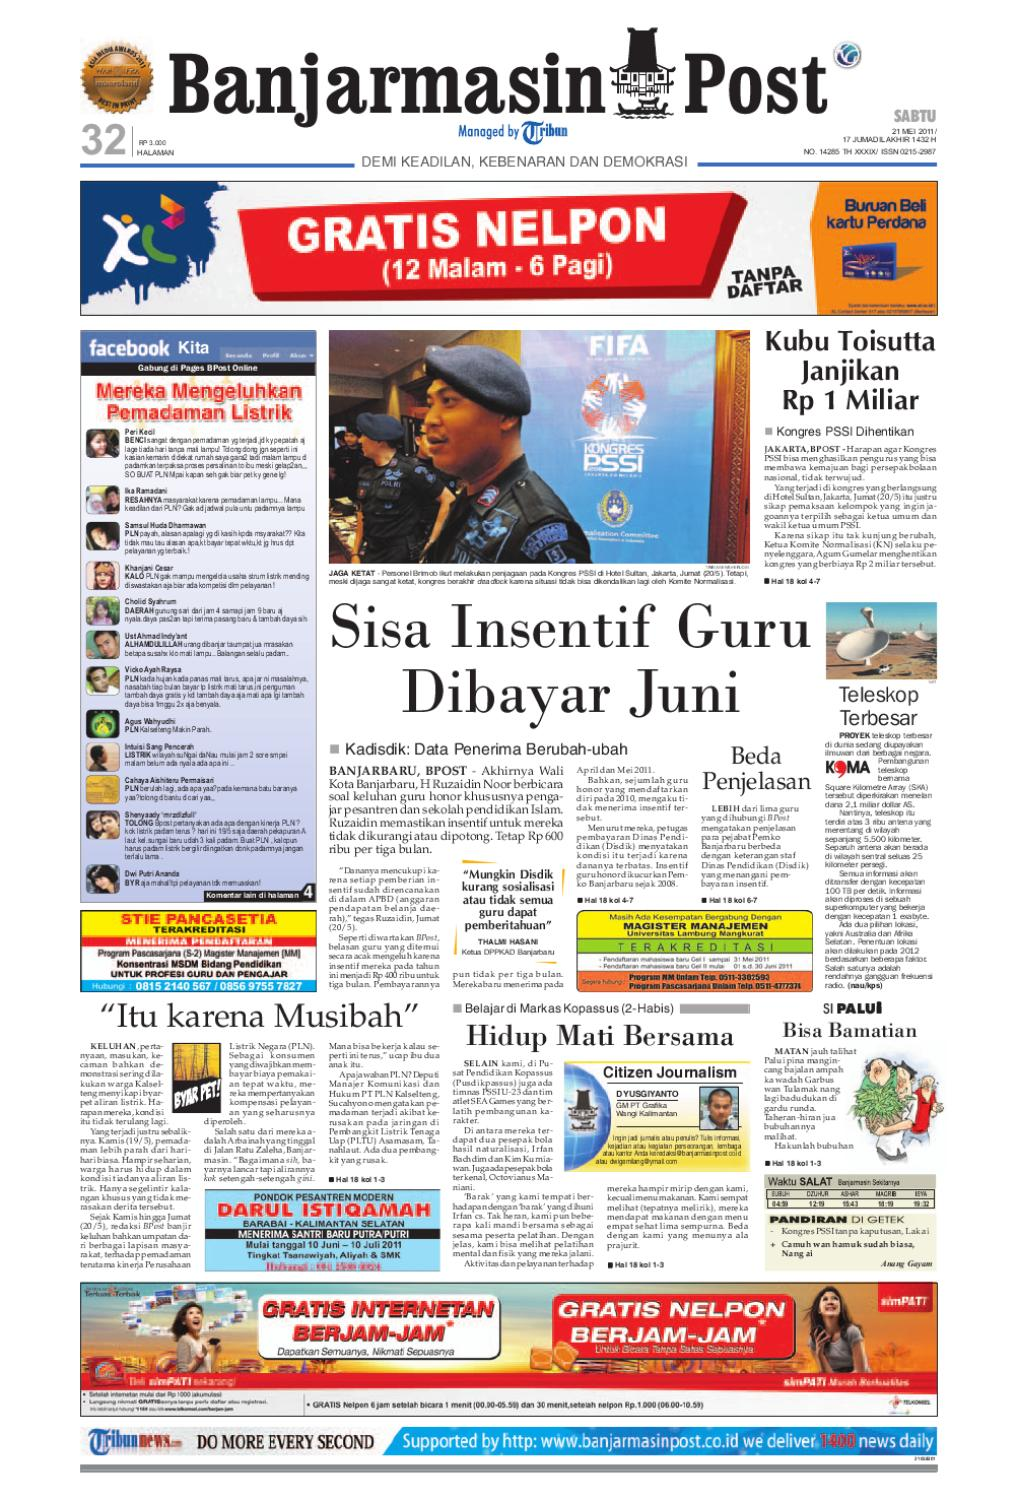 Banjarmasin Post Edisi Cetak Sabtu 21 Mei 2011 by Banjarmasin Post - issuu aa83ac96ed